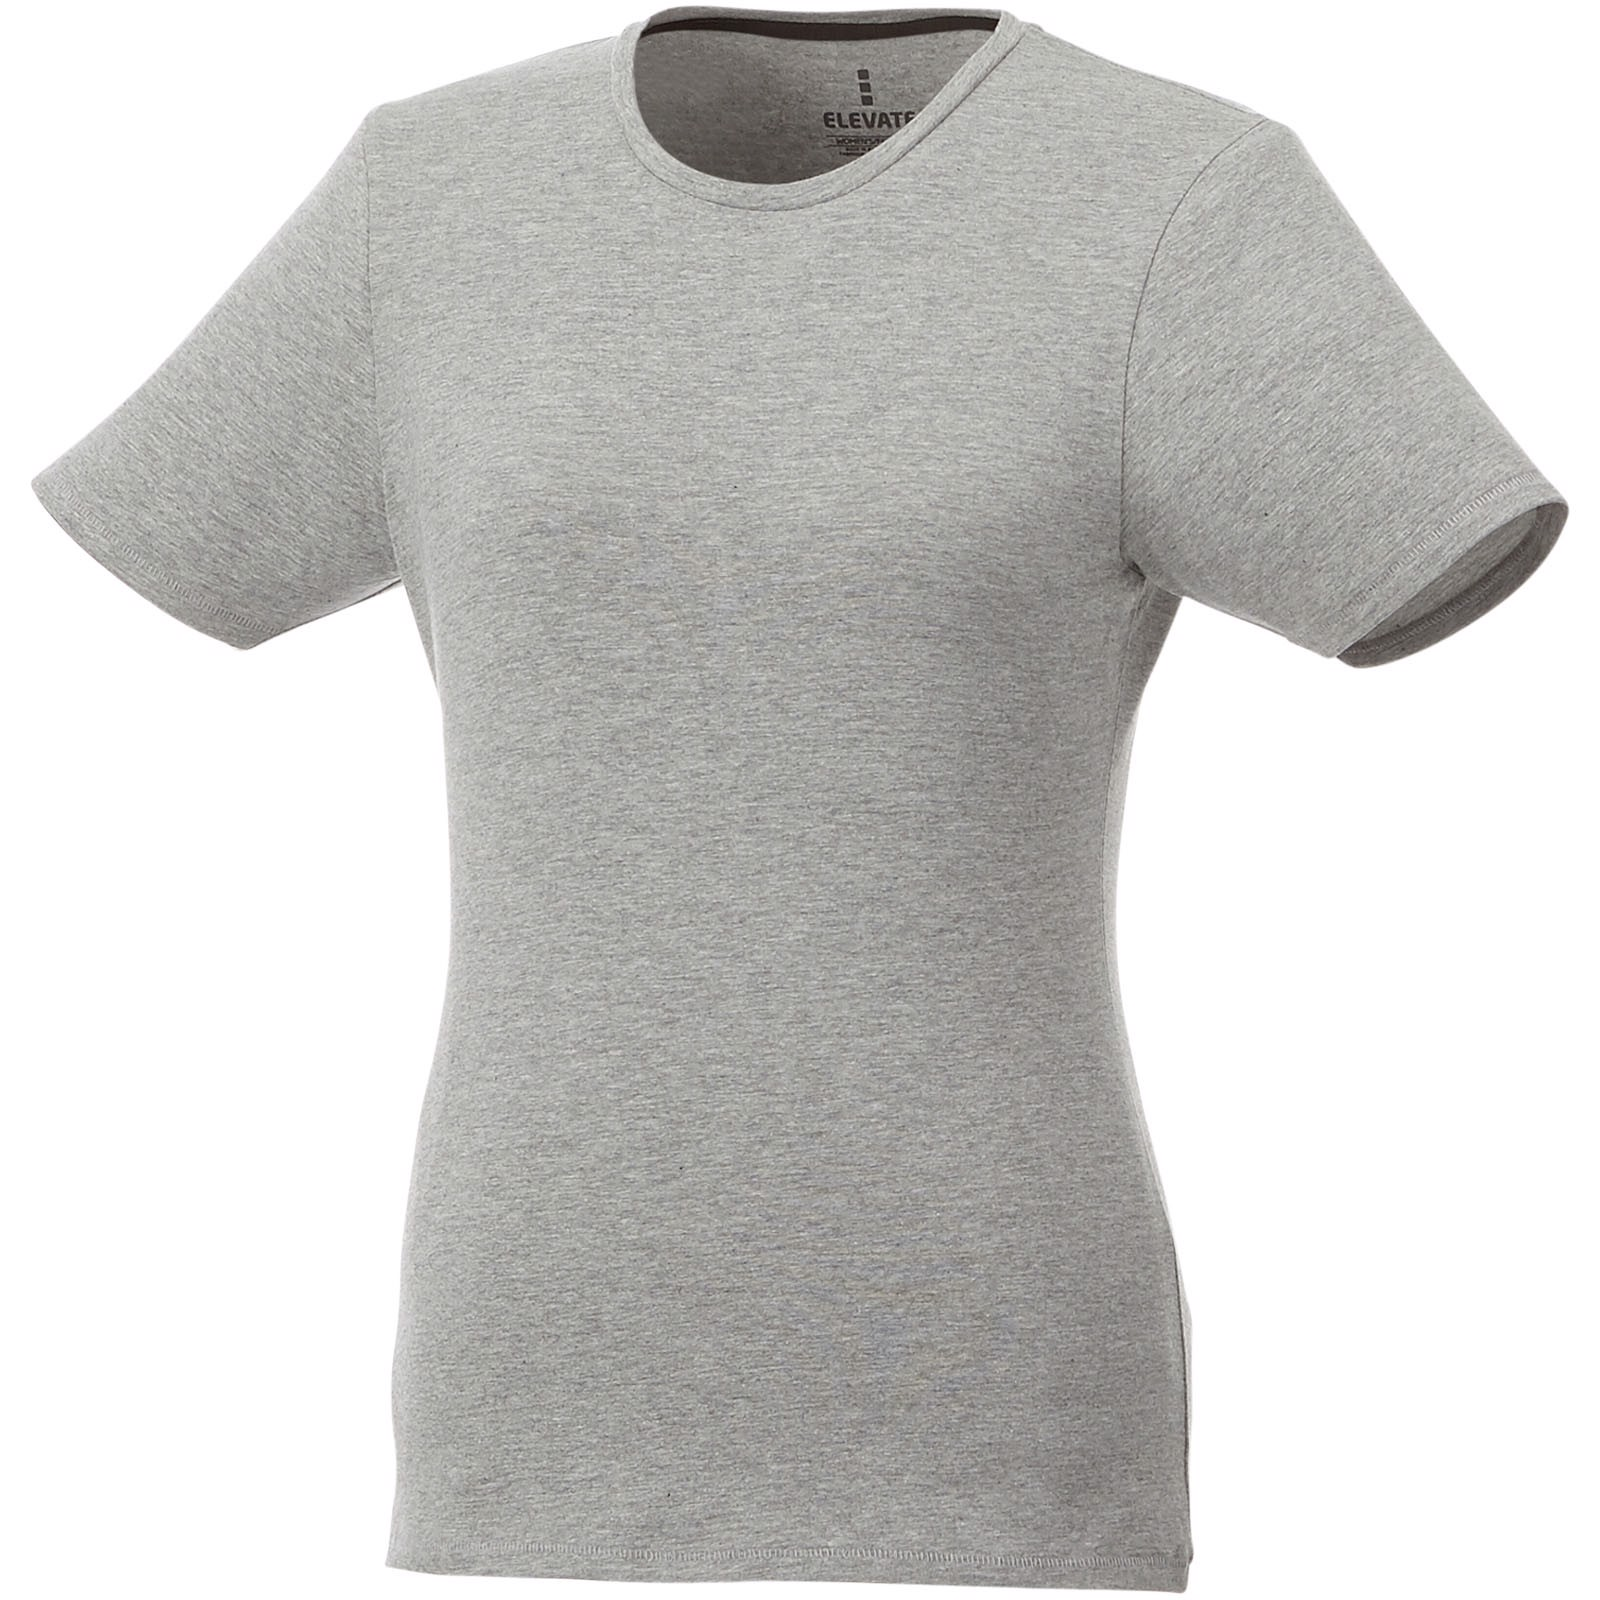 Balfour short sleeve women's GOTS organic t-shirt - Grey melange / XL